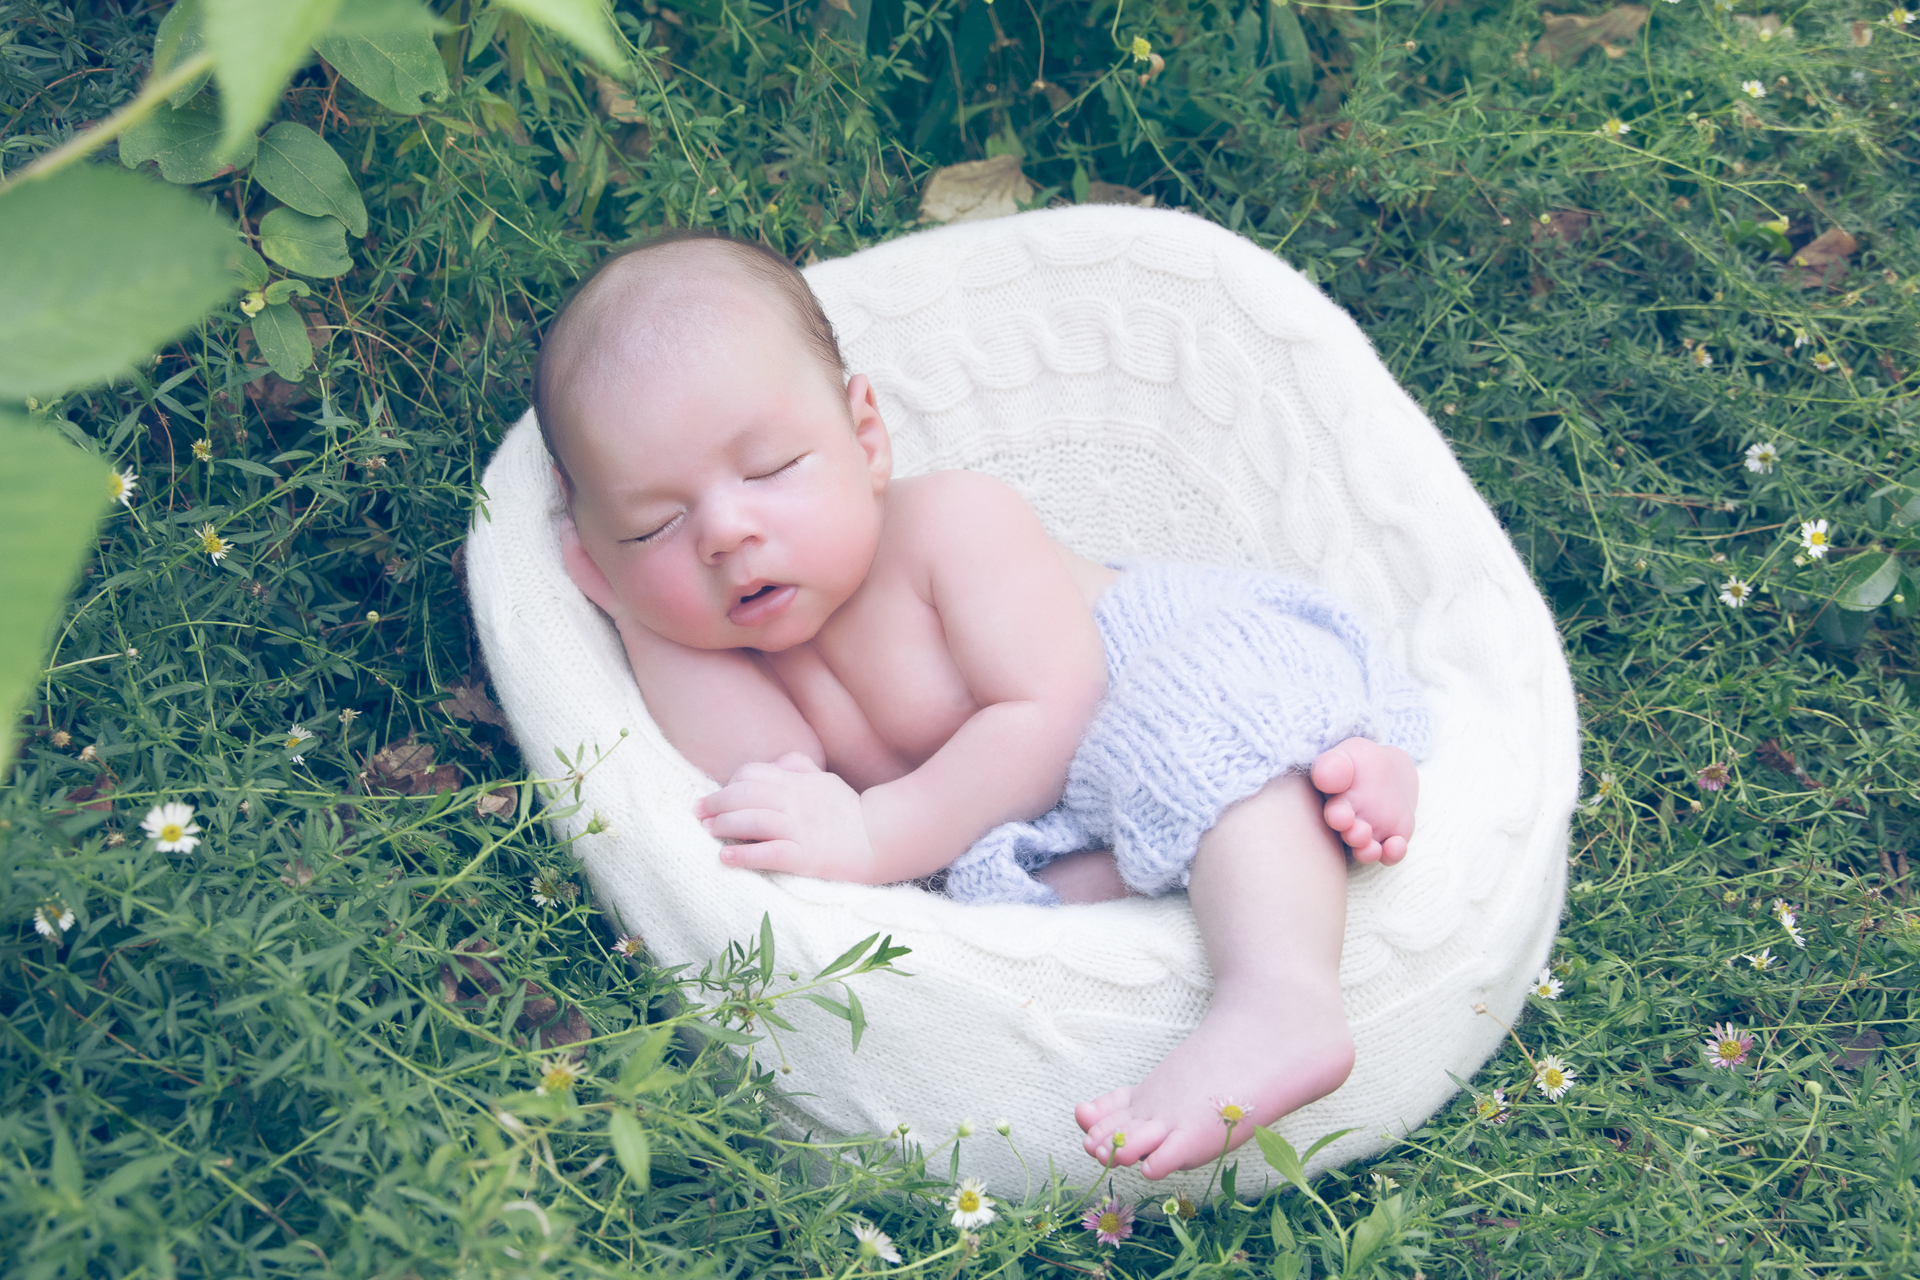 Newborn wearing light blue pants rests on white round prop outdoors.